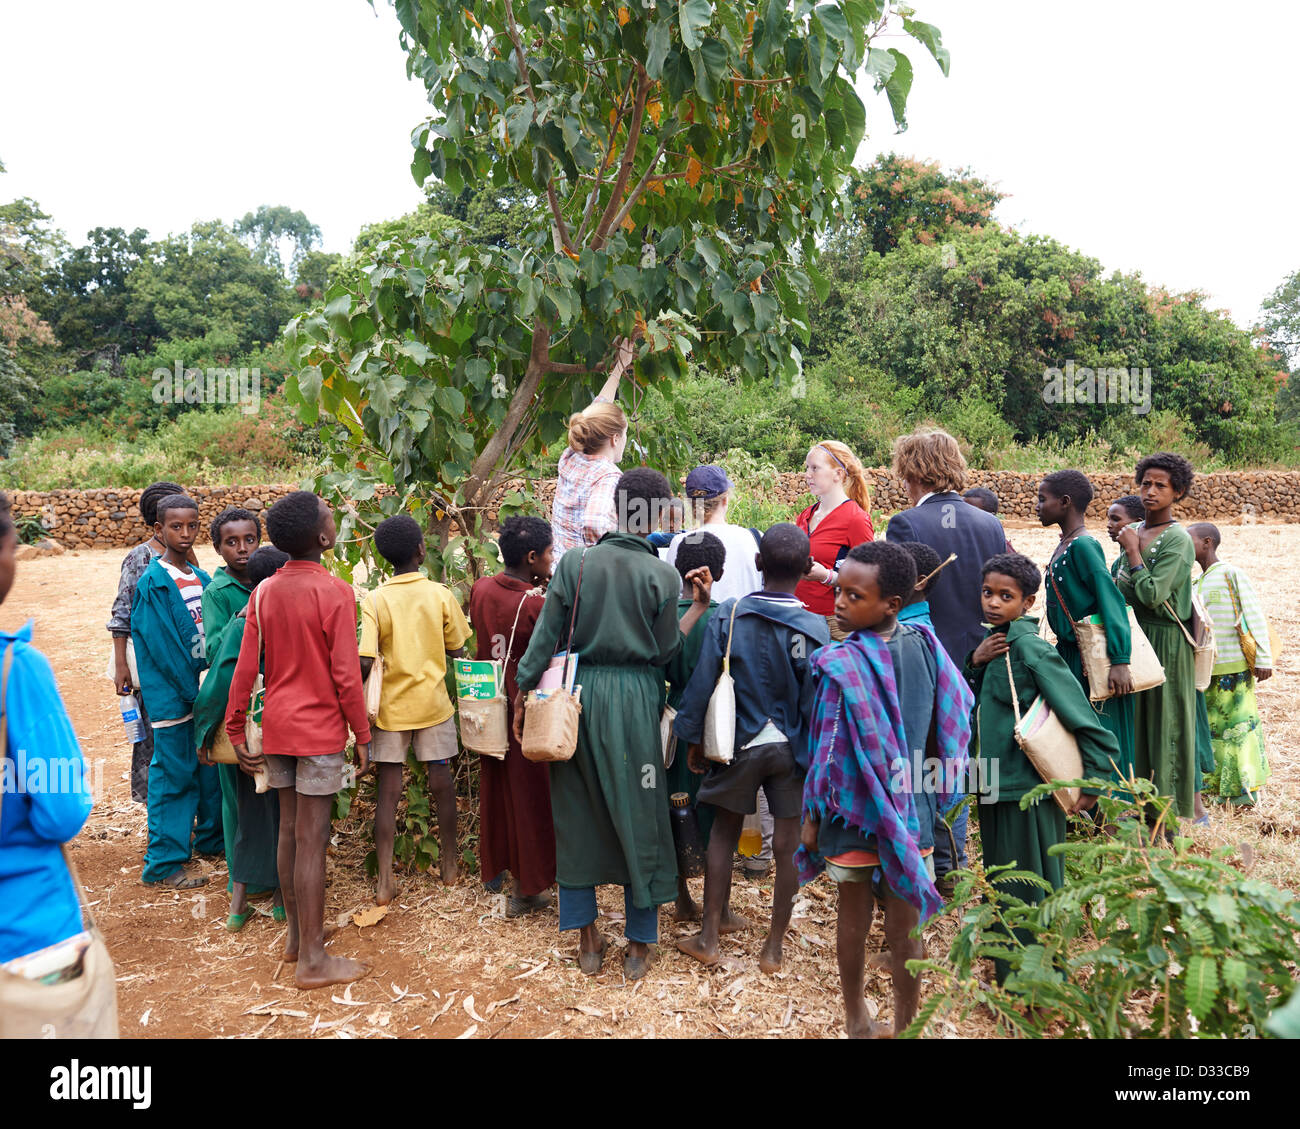 Children gather around research scientists studying insects in a field - Stock Image